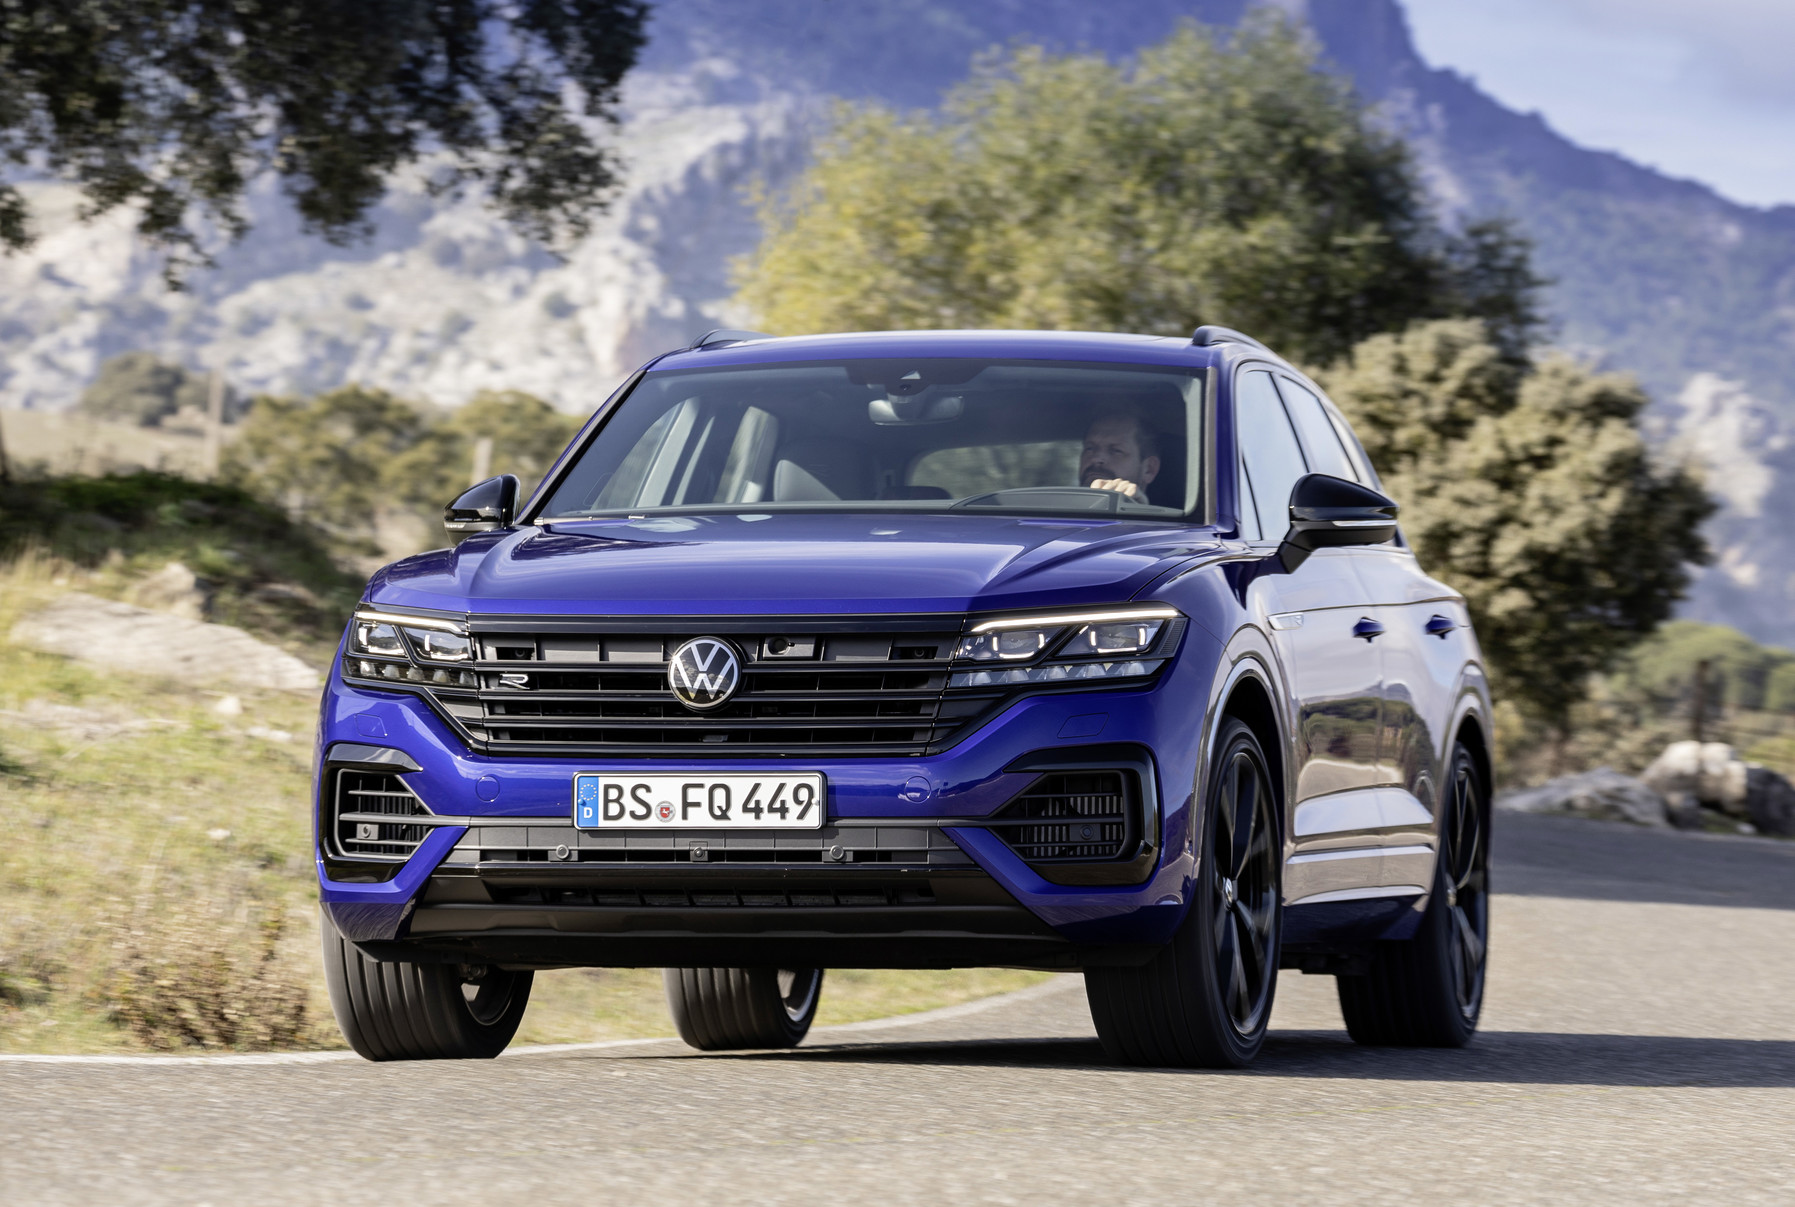 Volkswagen VW's first electrified R electric car model in blue